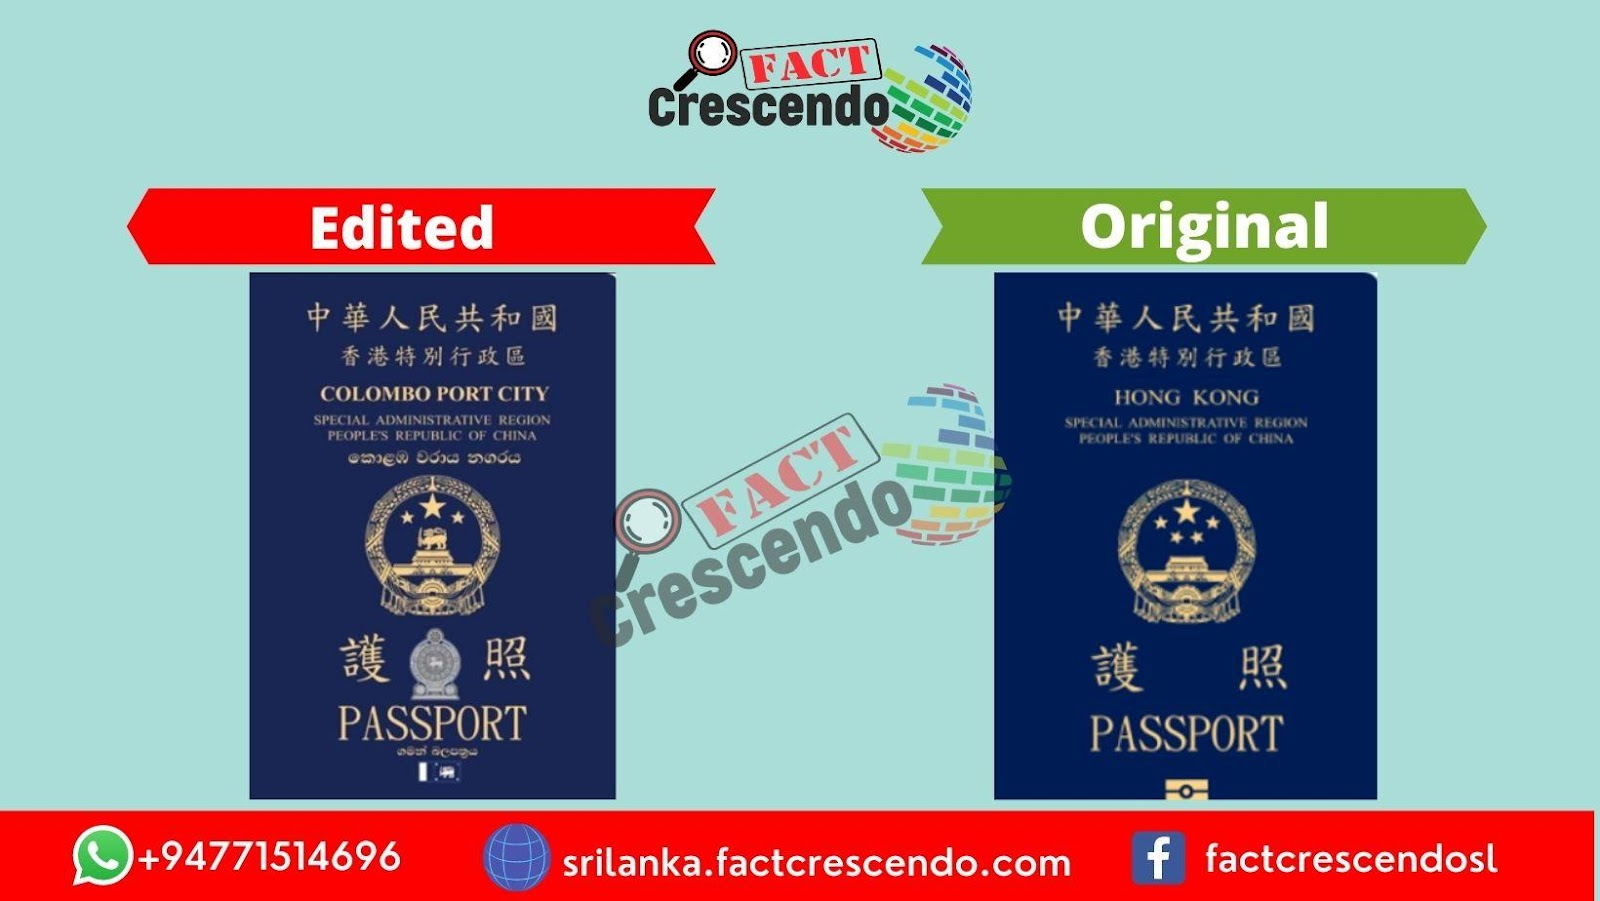 D:\AAA -Fact Checking\Completed\AAA-Publish\Sinhala\2021\216 Passport Port City\Horizontal Image Comparison.jpg